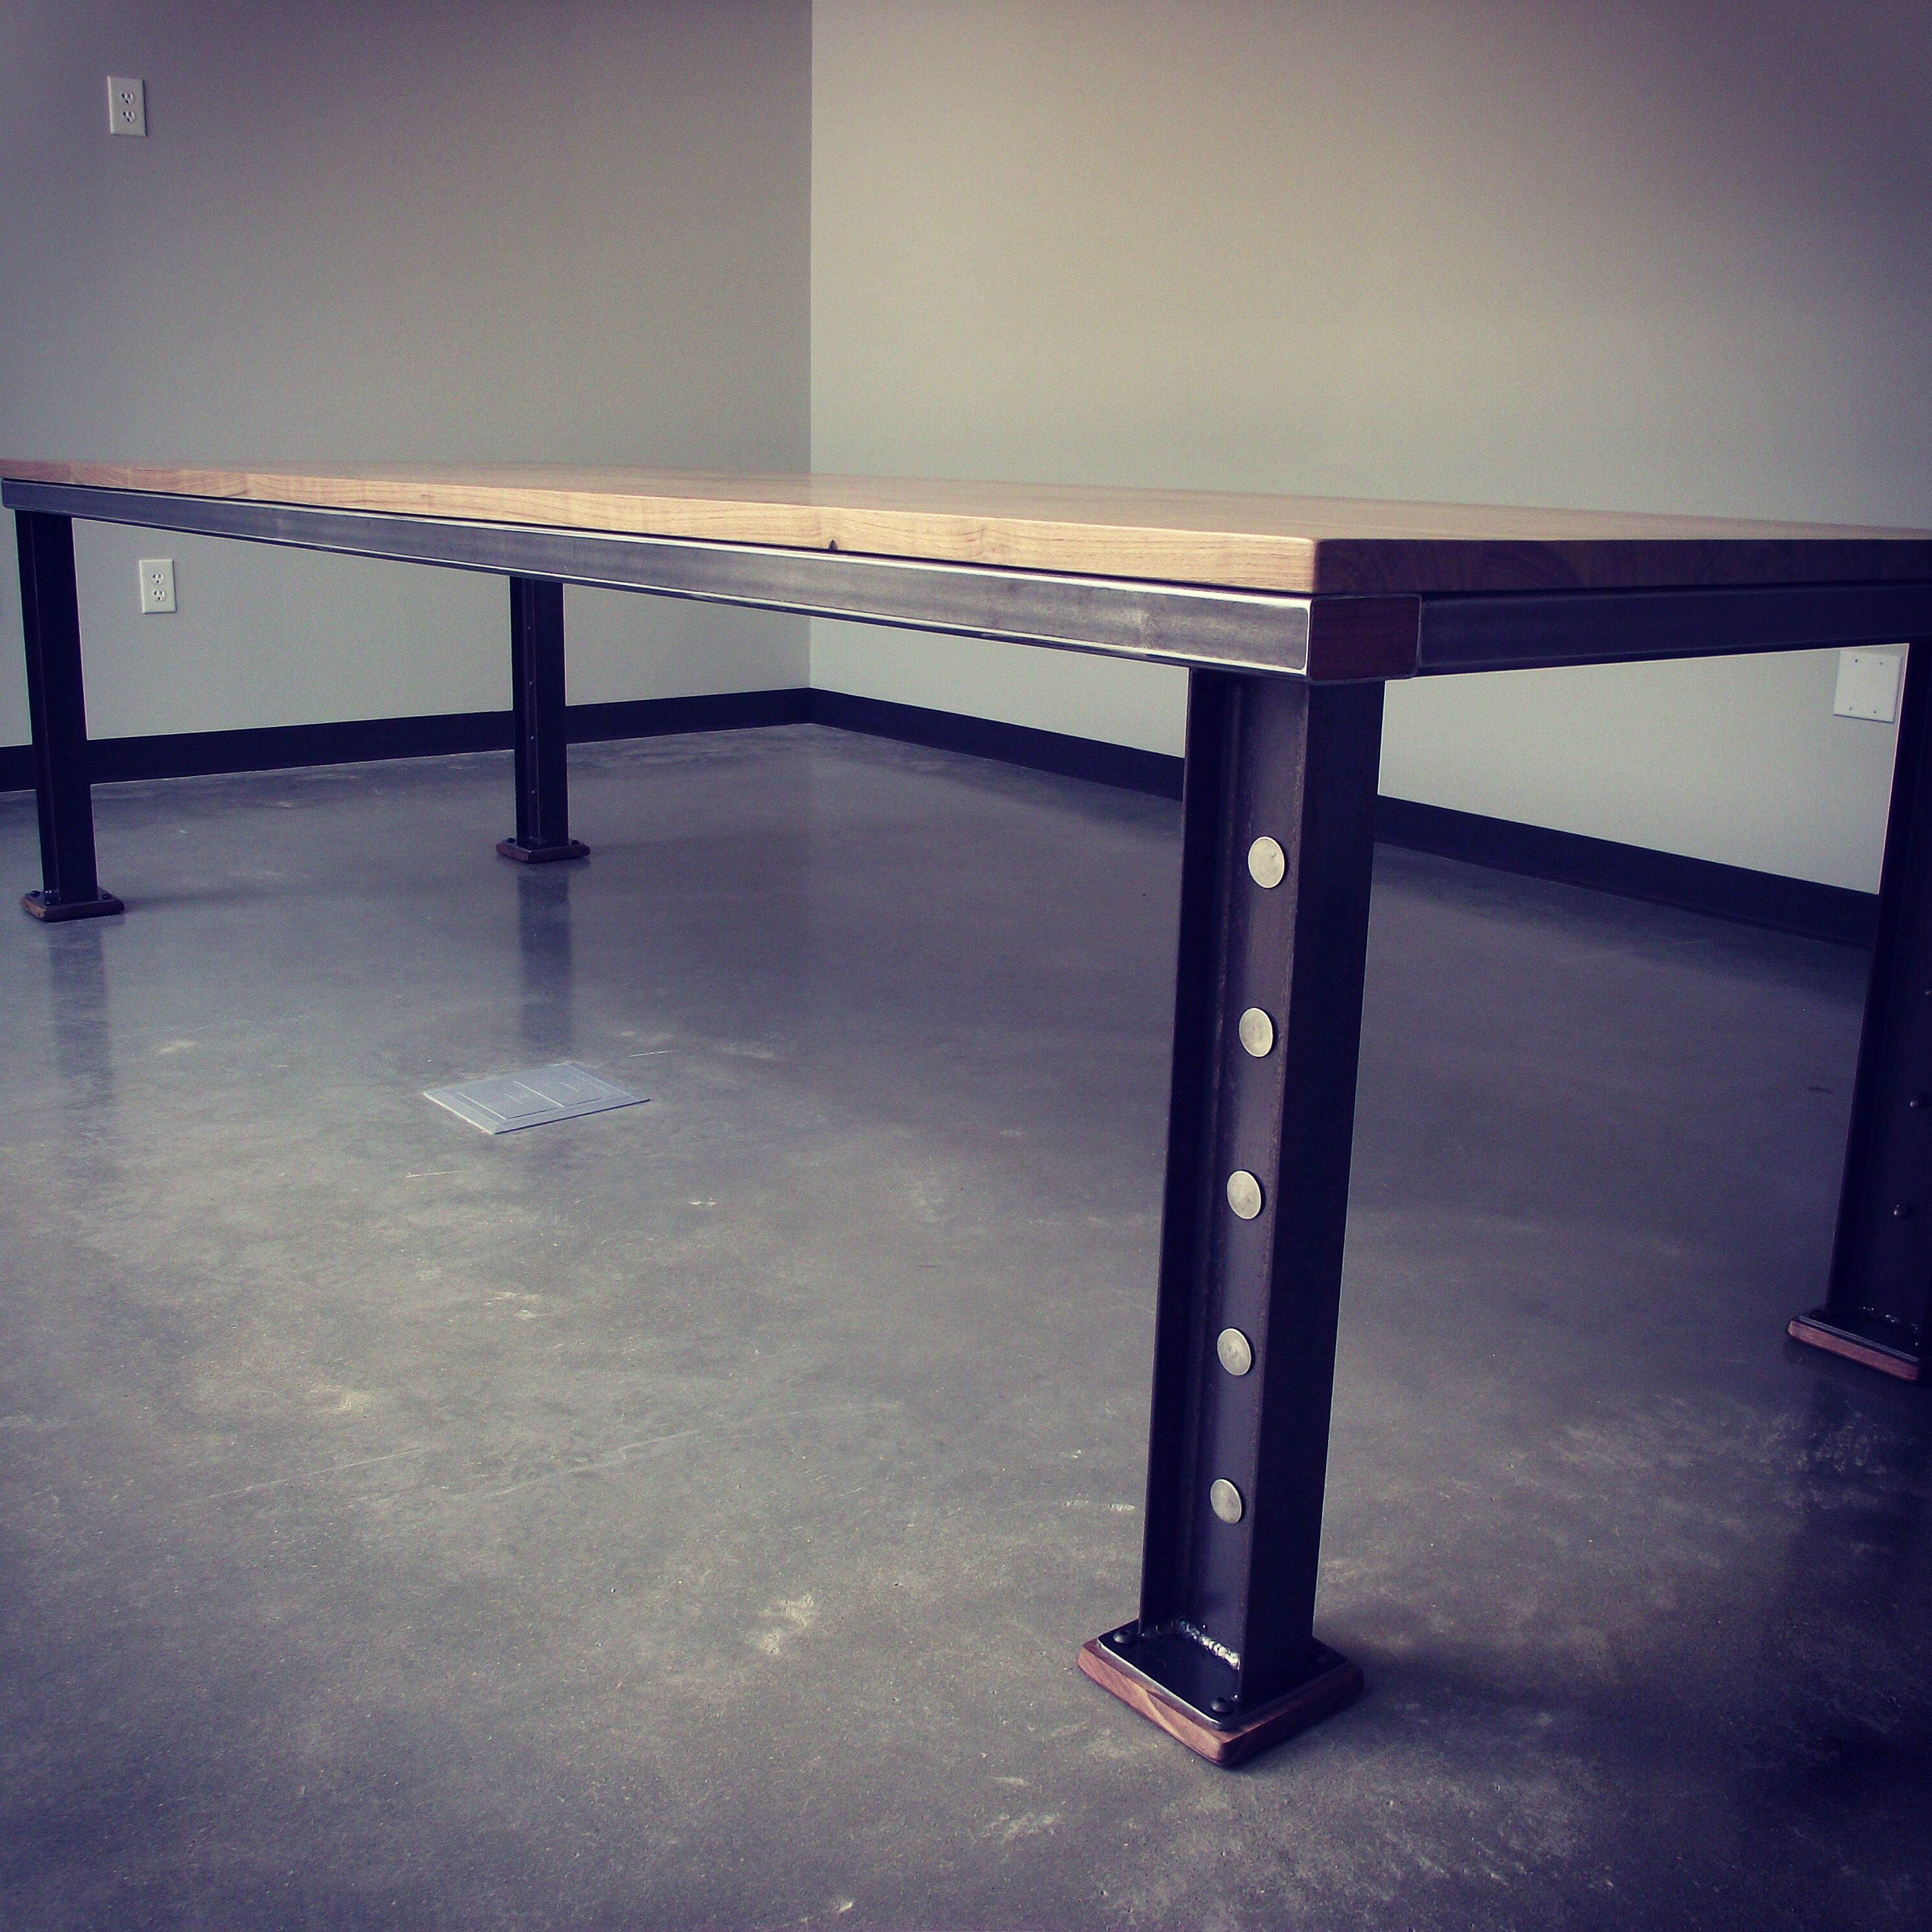 Magnervision Design Build With Alec Barrows Of Mettle 10ft Conference Table For Brookwood With Images Industrial Conference Table Industrial Table Steel Beams